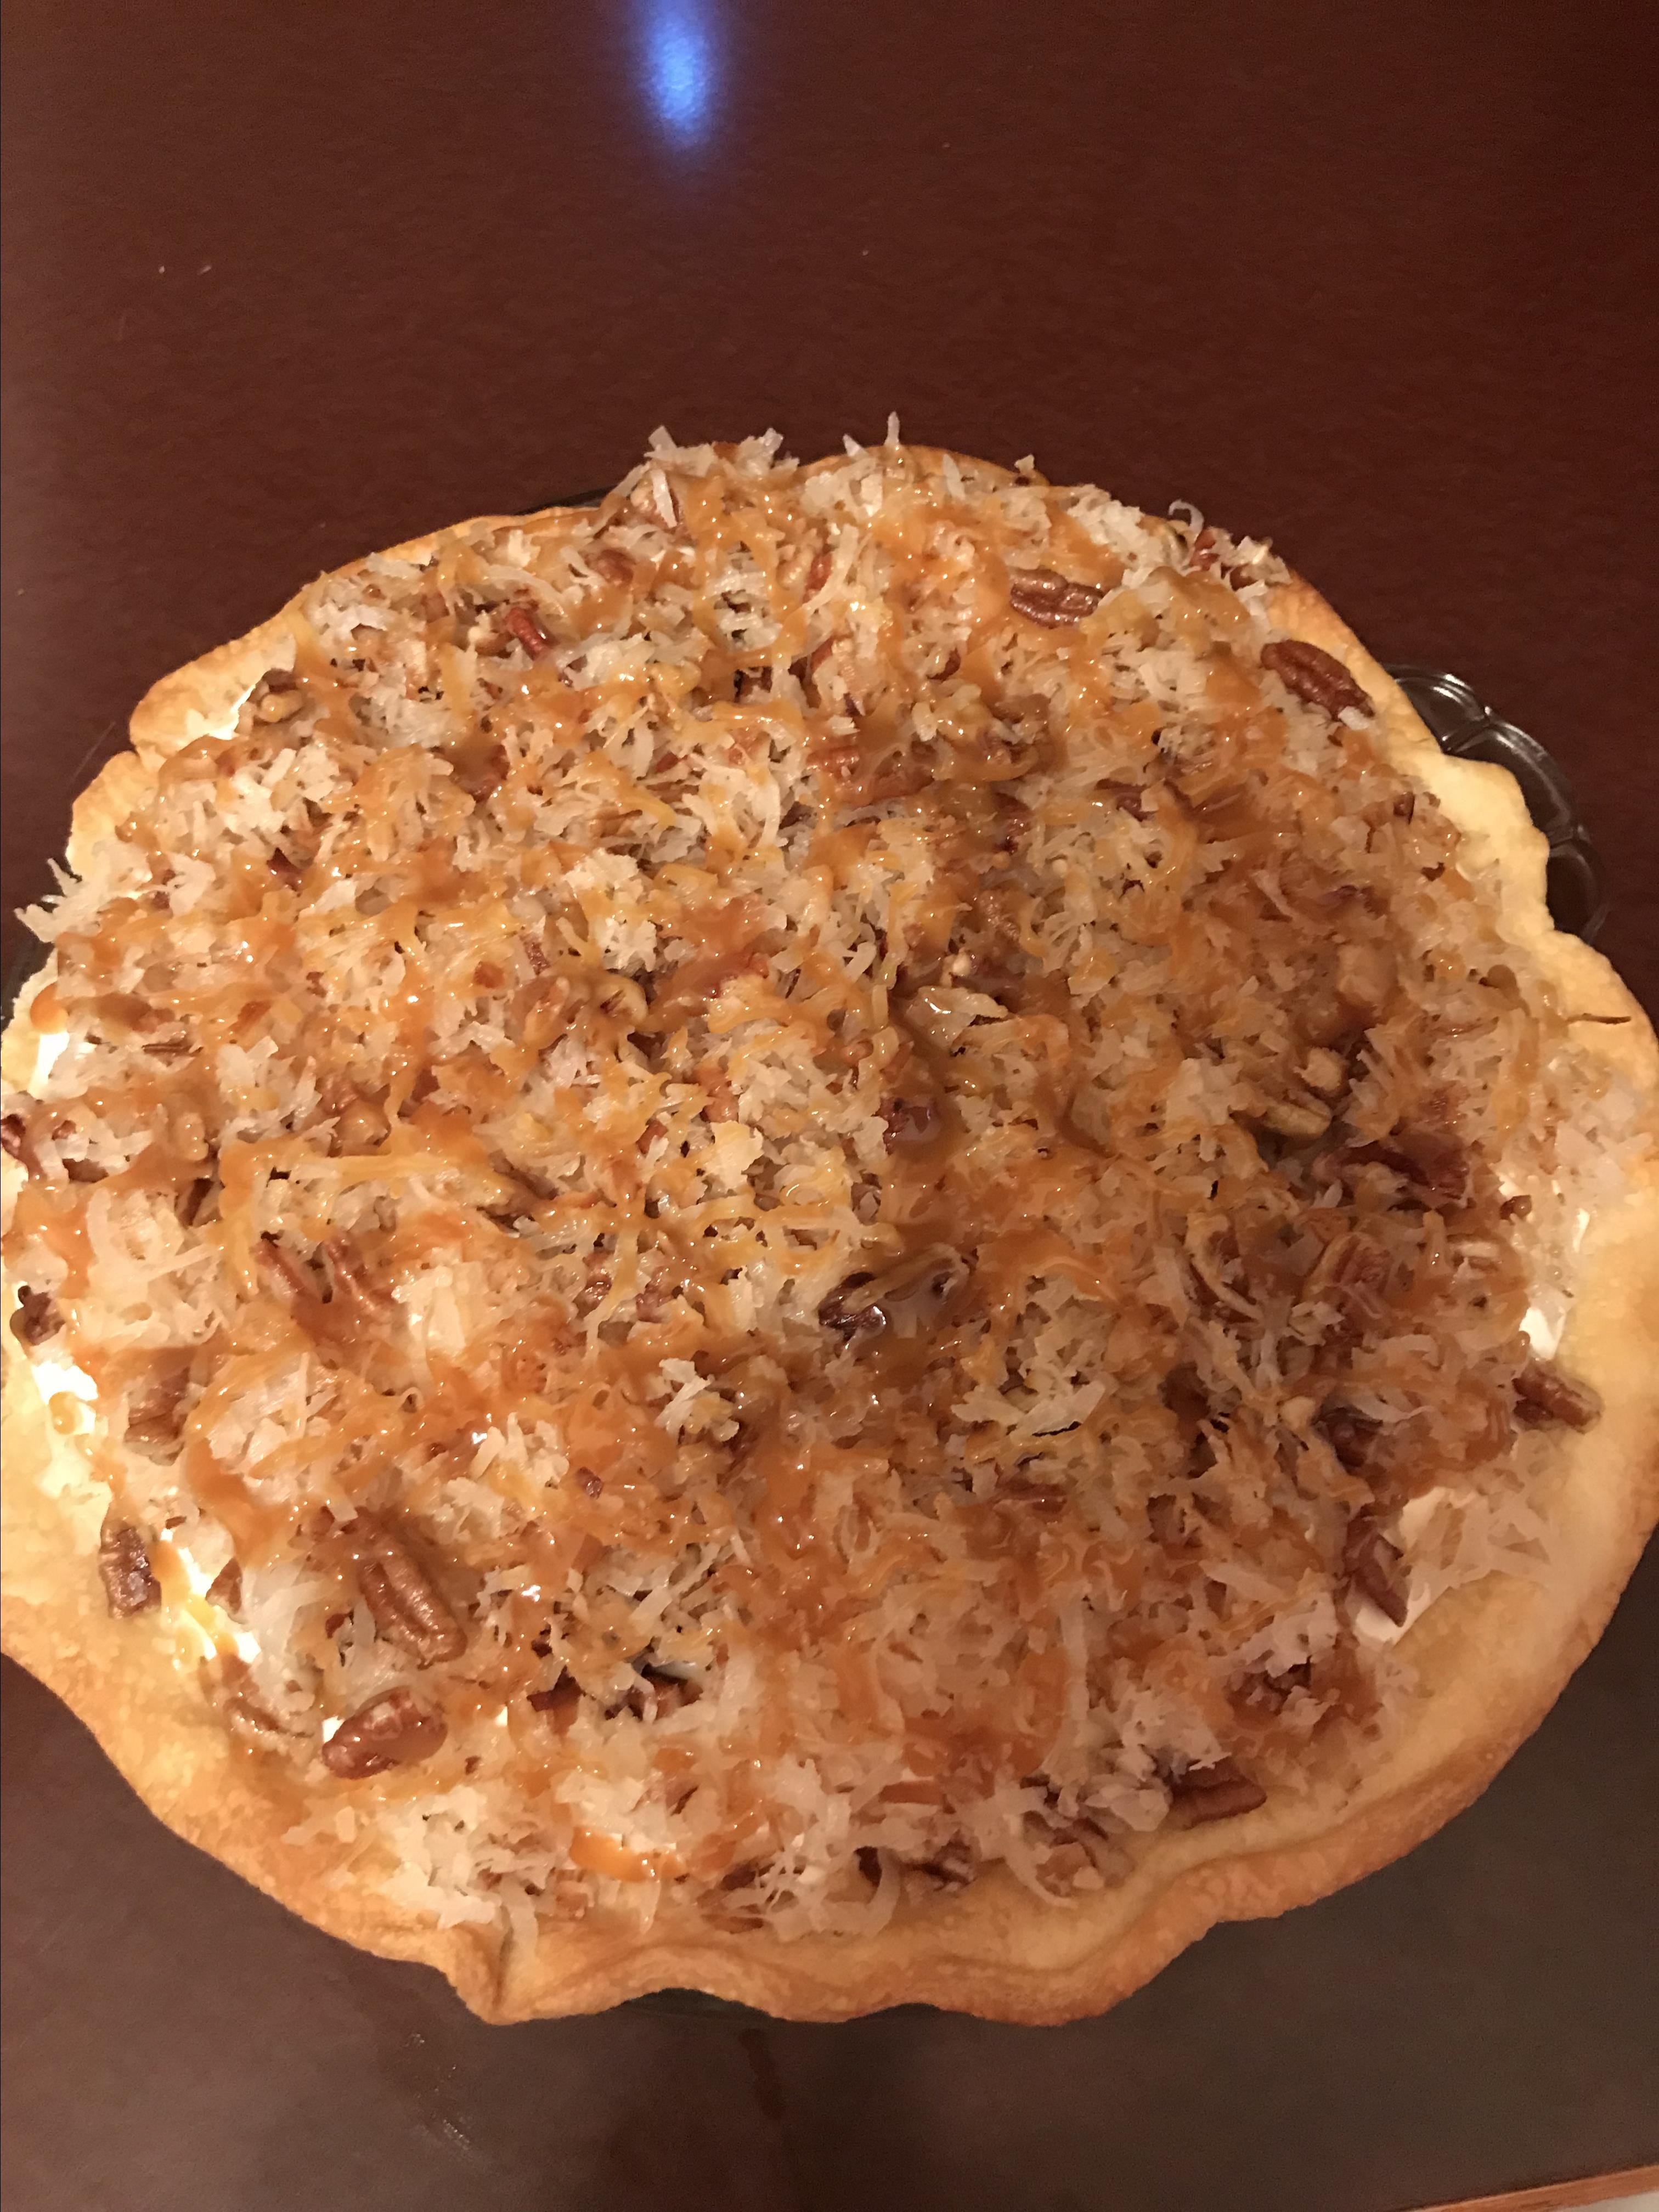 Toasted Coconut, Pecan, and Caramel Pie